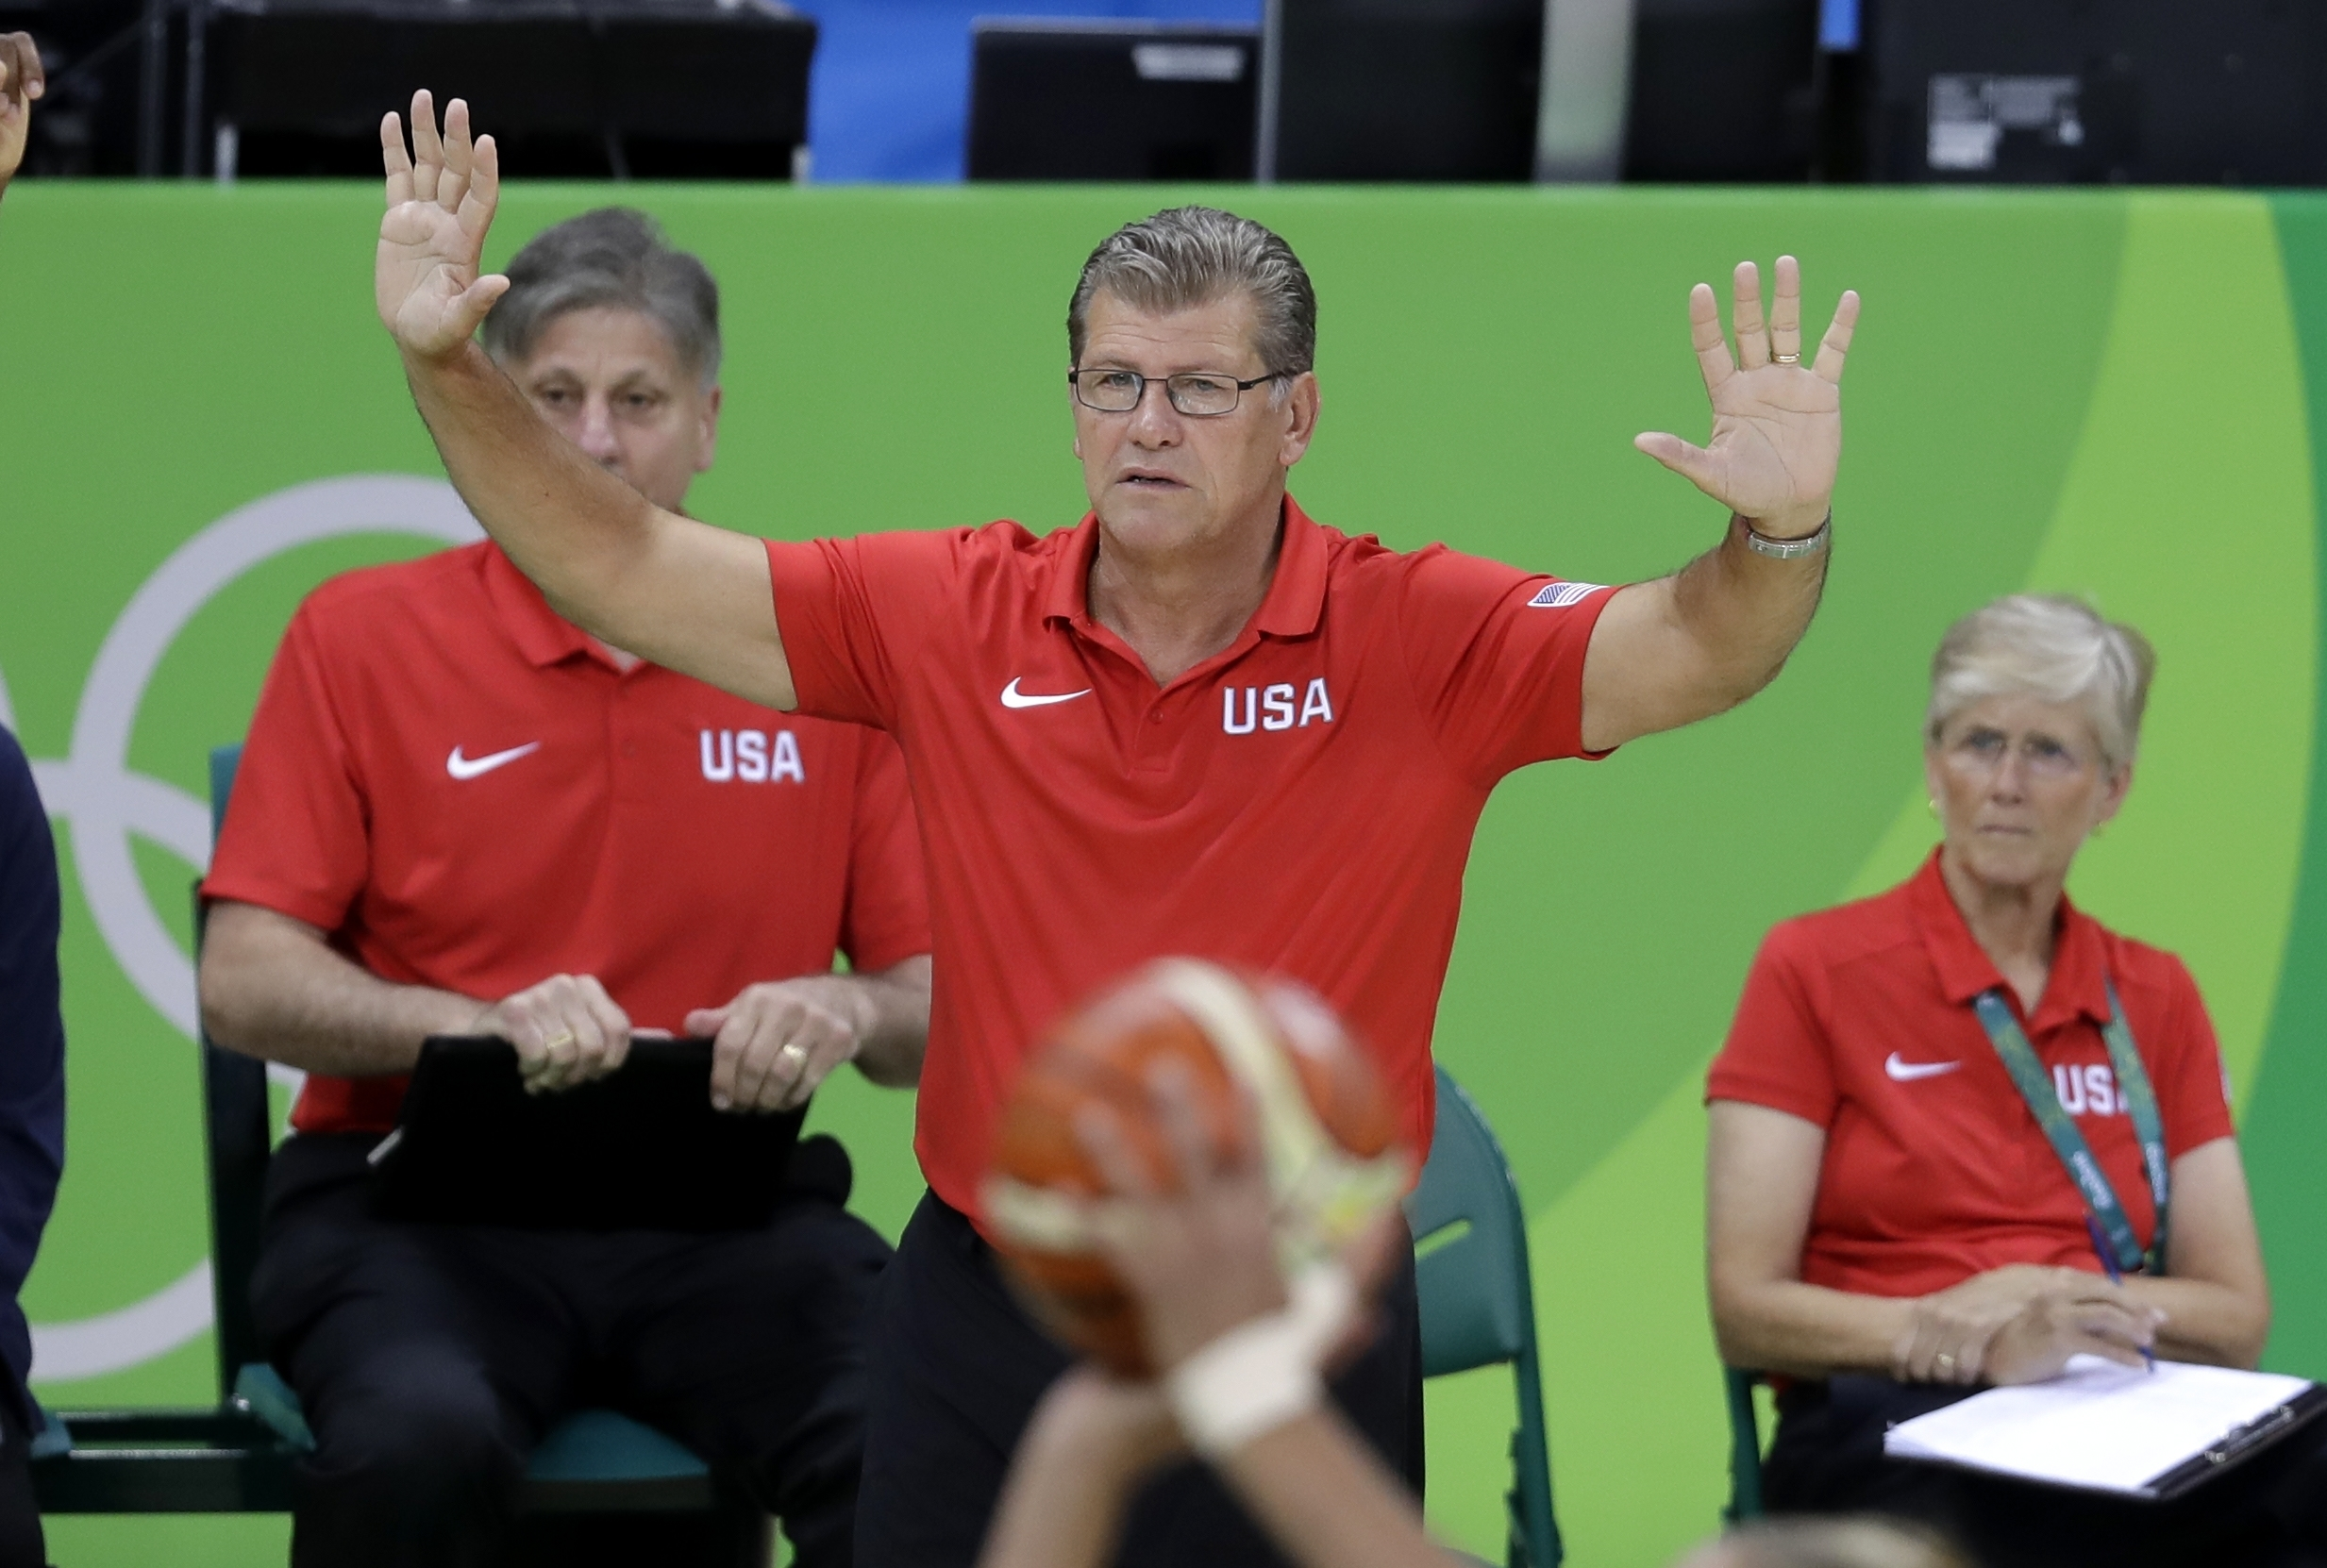 United States head coach Geno Auriemma signals from the bench during the second half of a women's basketball game against Canada at the Youth Center at the 2016 Summer Olympics in Rio de Janeiro, Brazil, Friday, Aug. 12, 2016. The United States defeated C